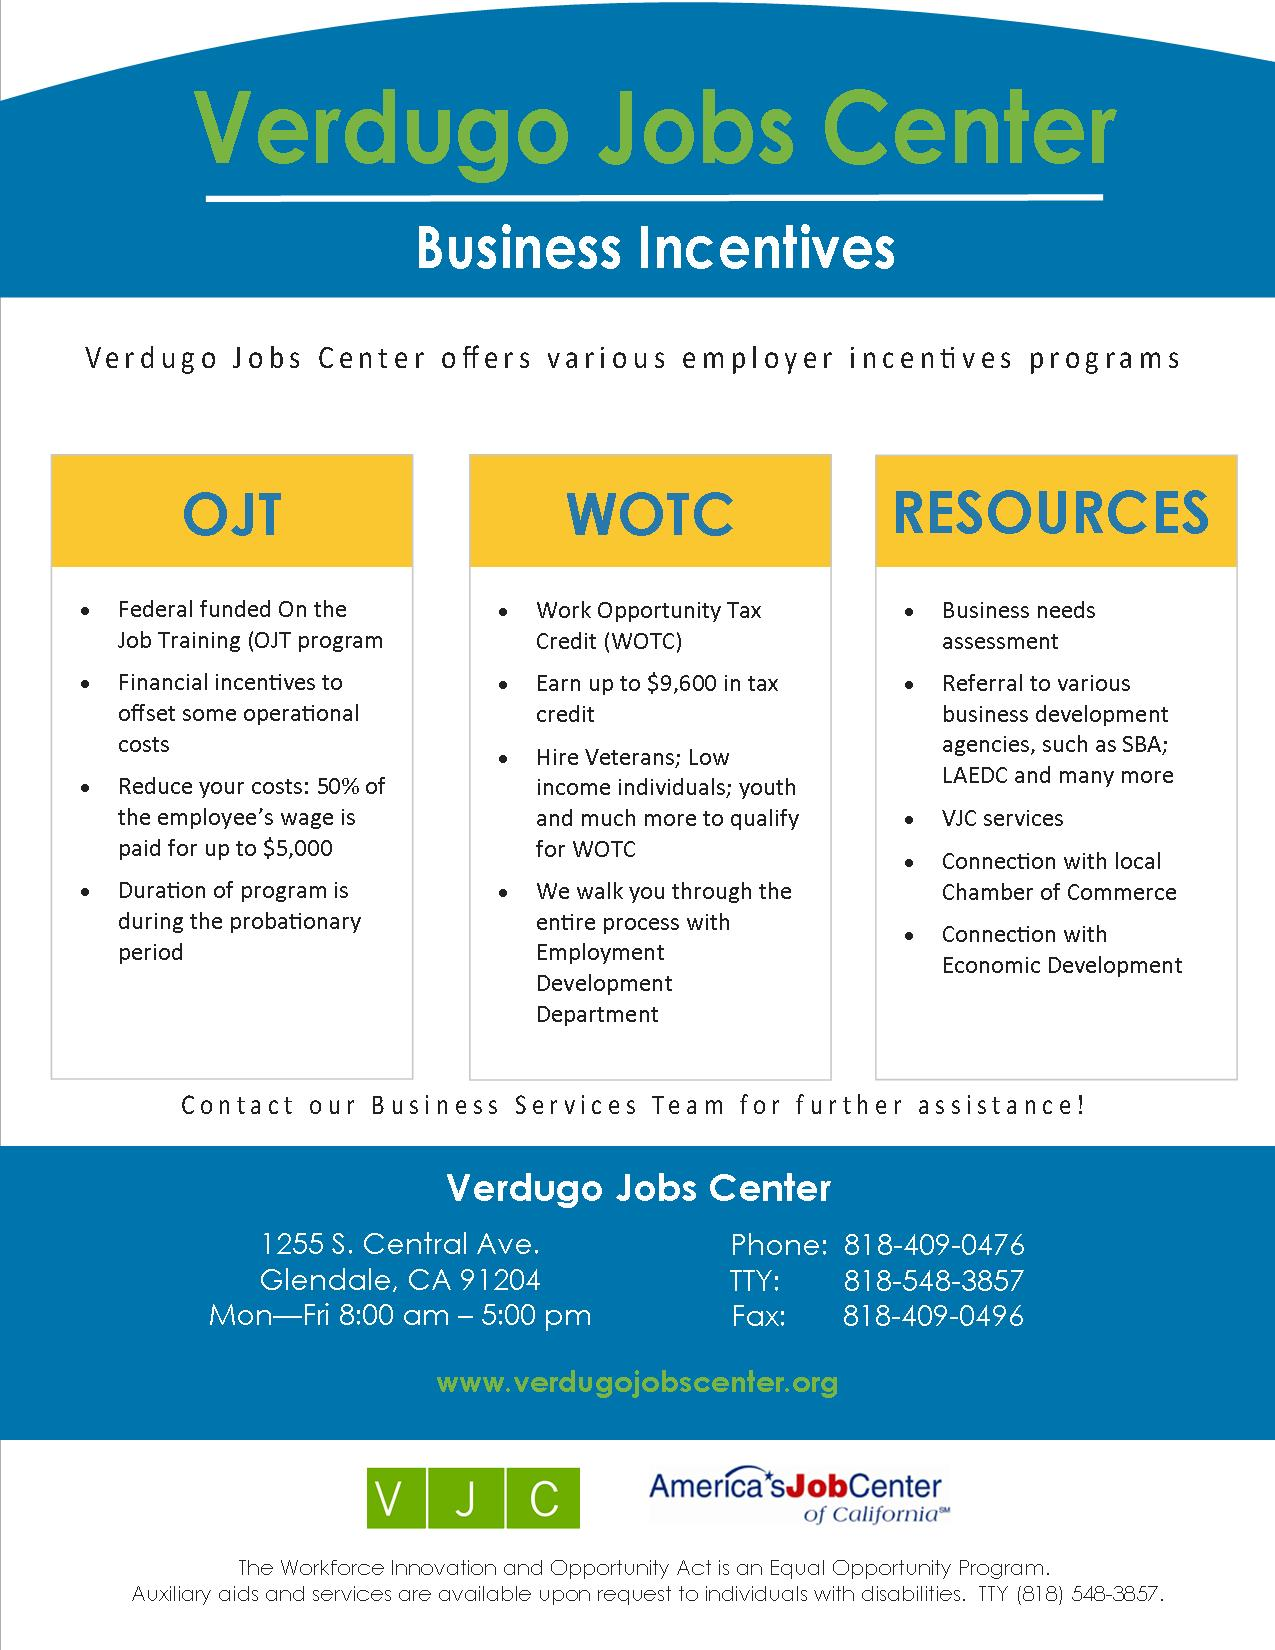 VJC Business Incentive Flyer Updated logo